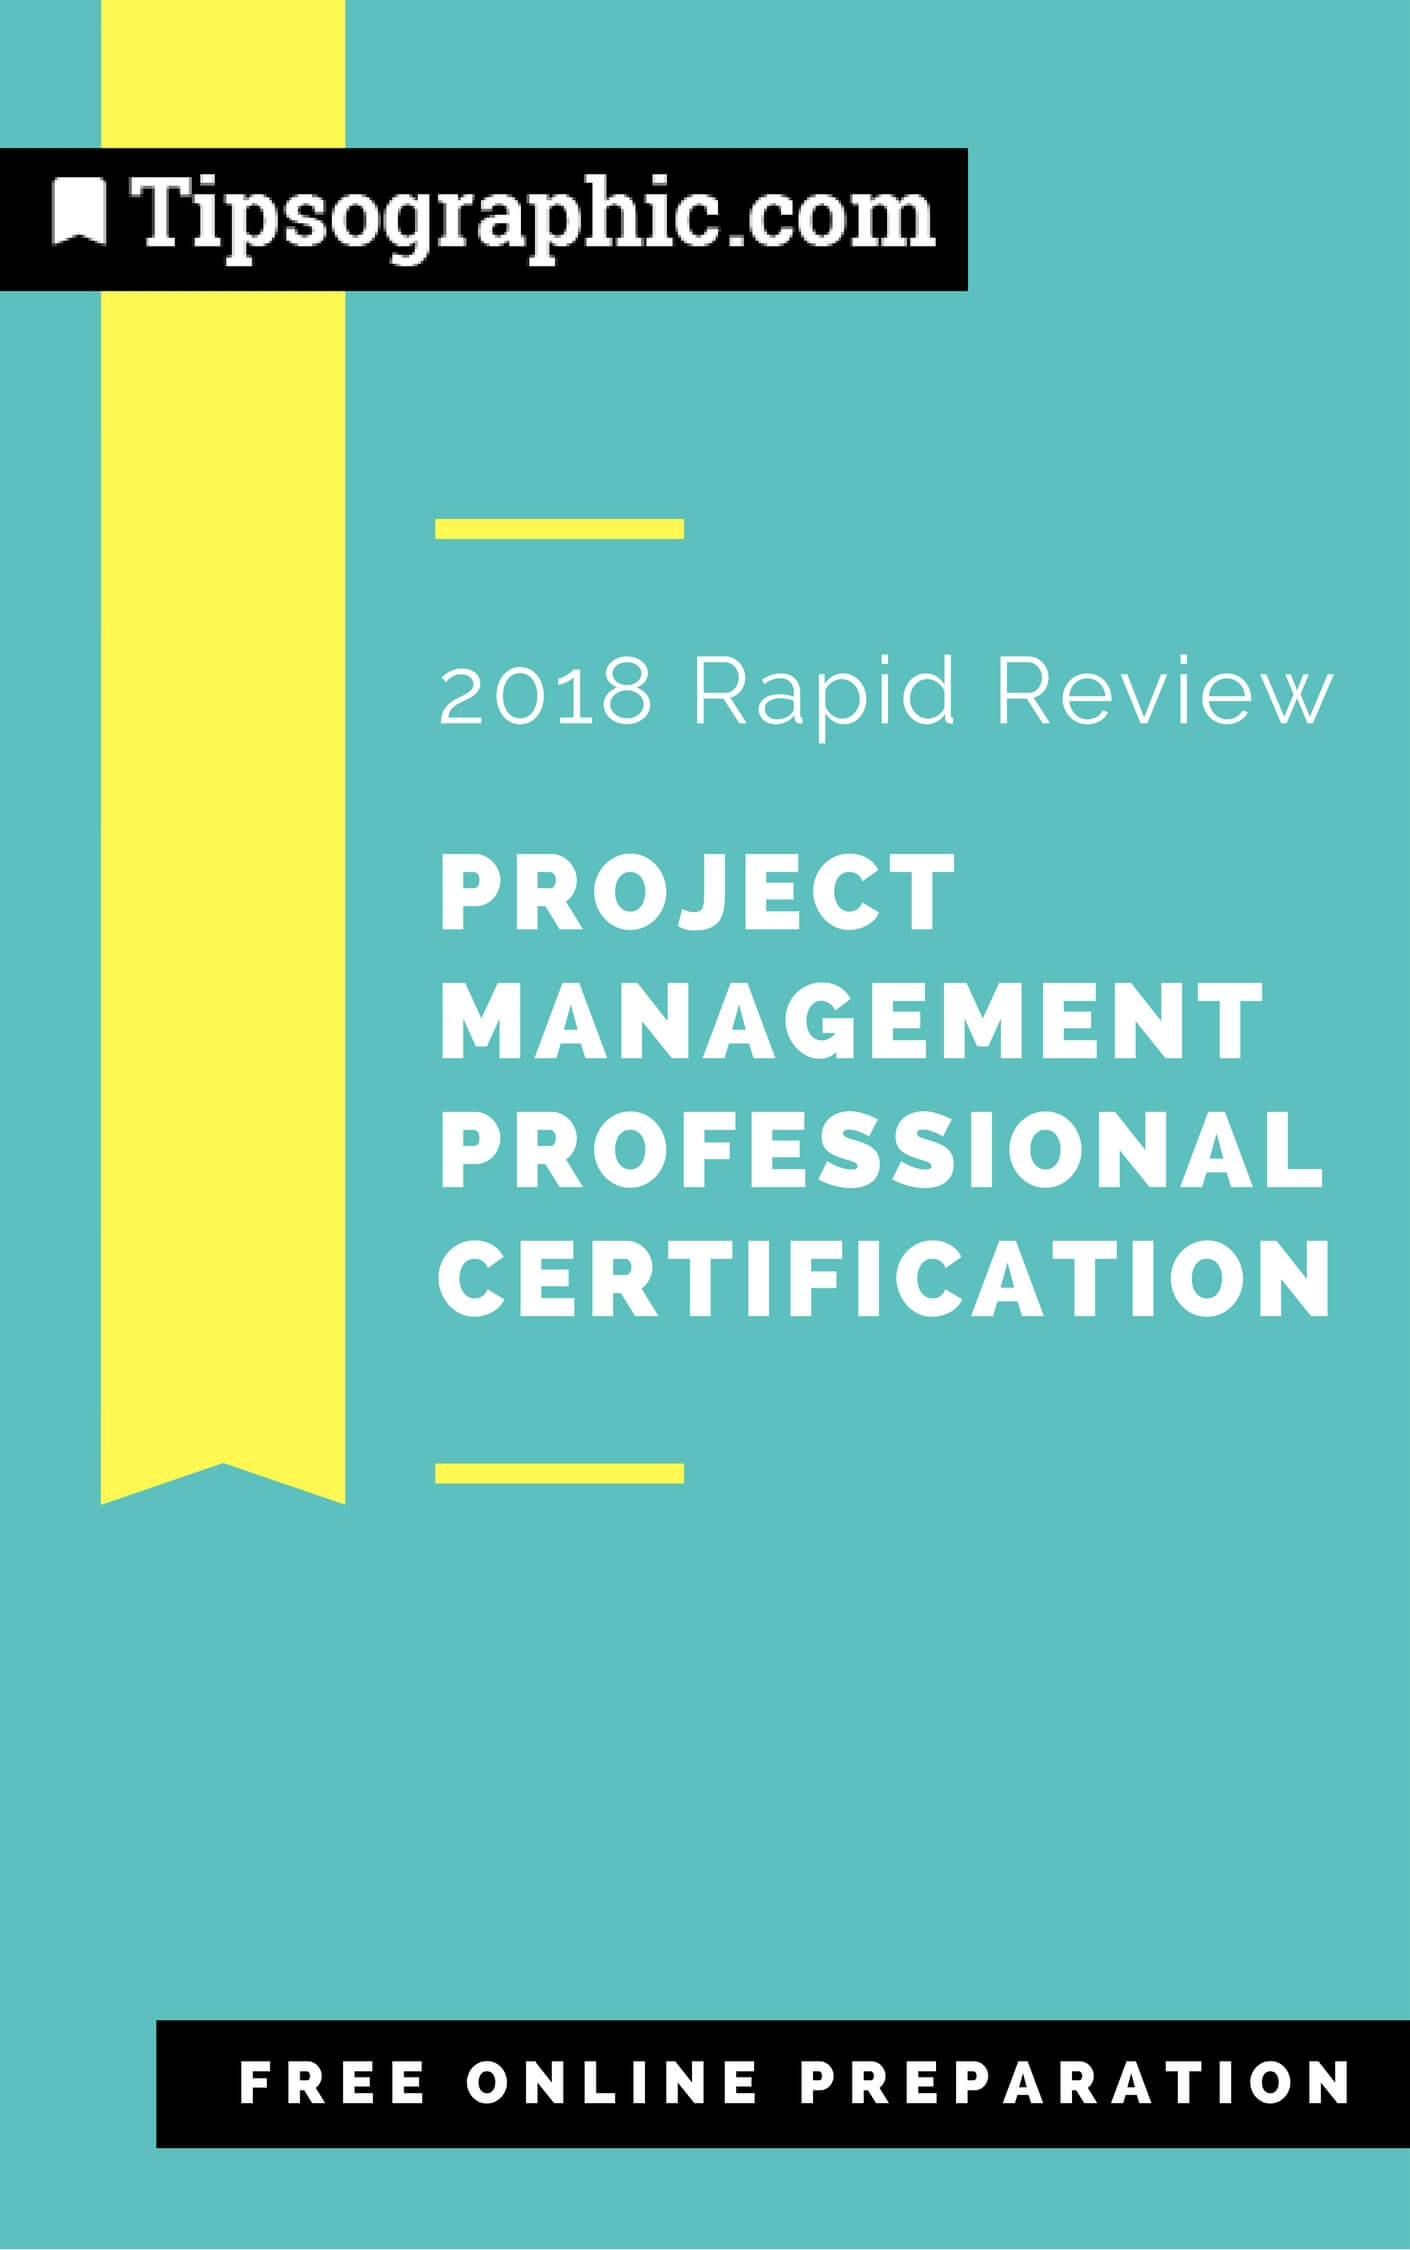 project management professional certification 2018 rapid review free online preparation tipsographic